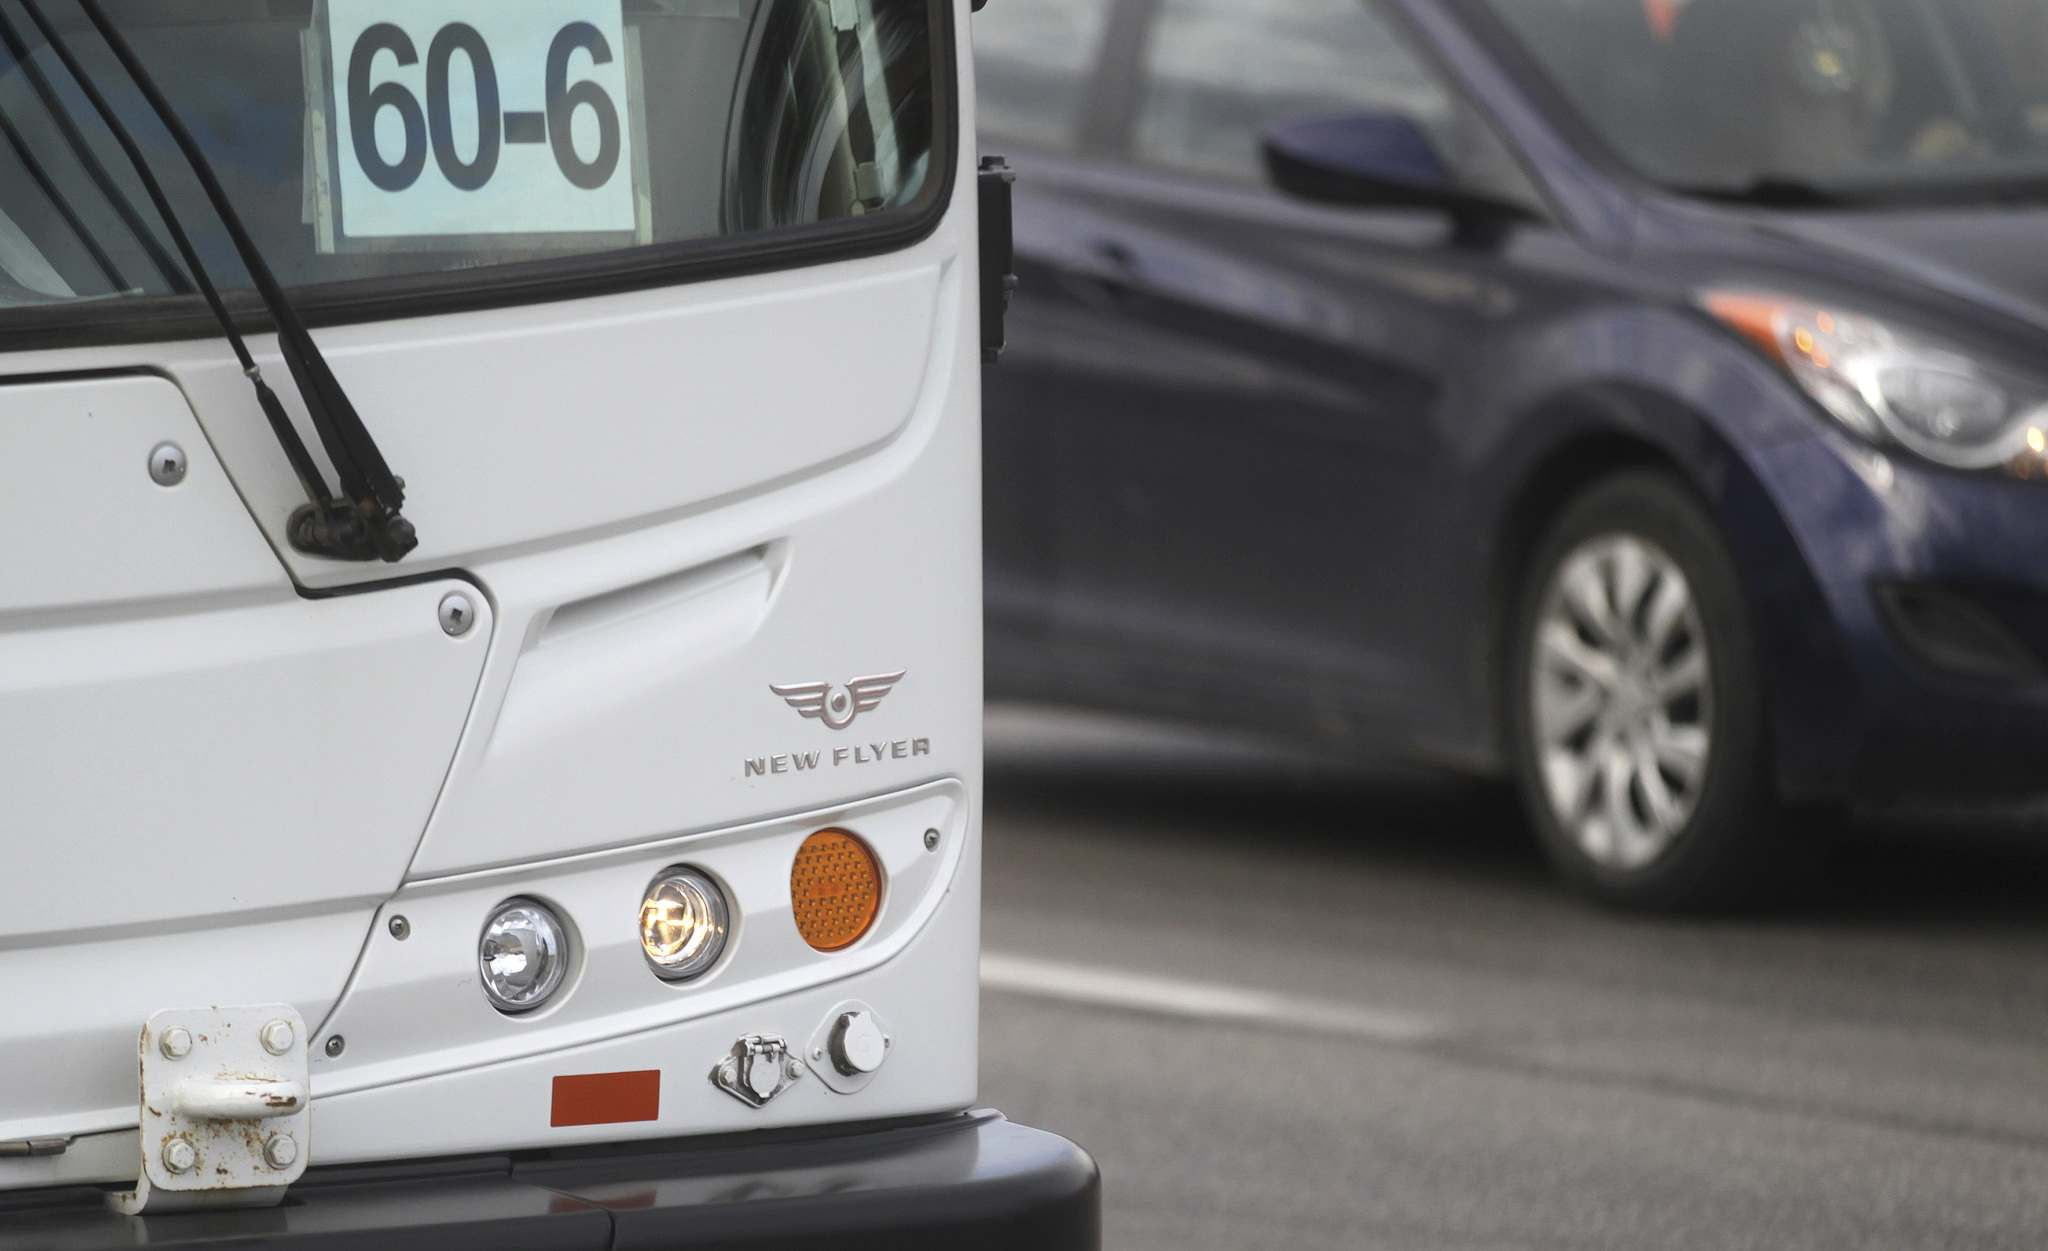 PHIL HOSSACK / WINNIPEG FREE PRESS FILES</p><p>For decades New Flyer has been relying on U.S. transit authorities&#39; ability to access U.S. federal funding to be able to purchase transit buses that are designed, engineered and partially built at its Winnipeg headquarters.</p>